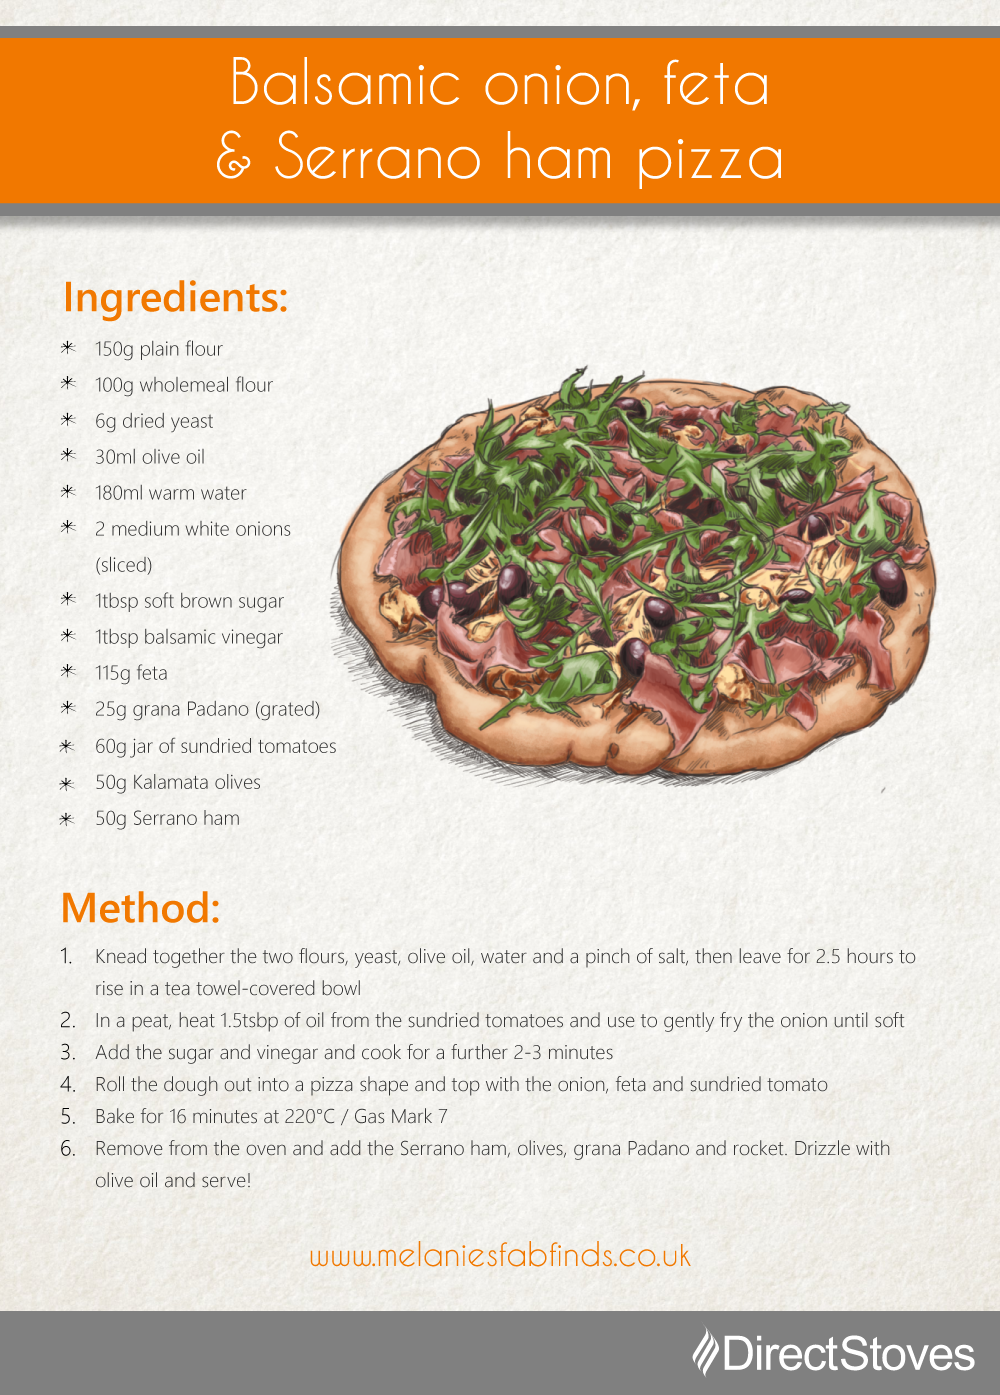 Pizza recipe card: Balsamic onion, feta & Serrano ham pizza